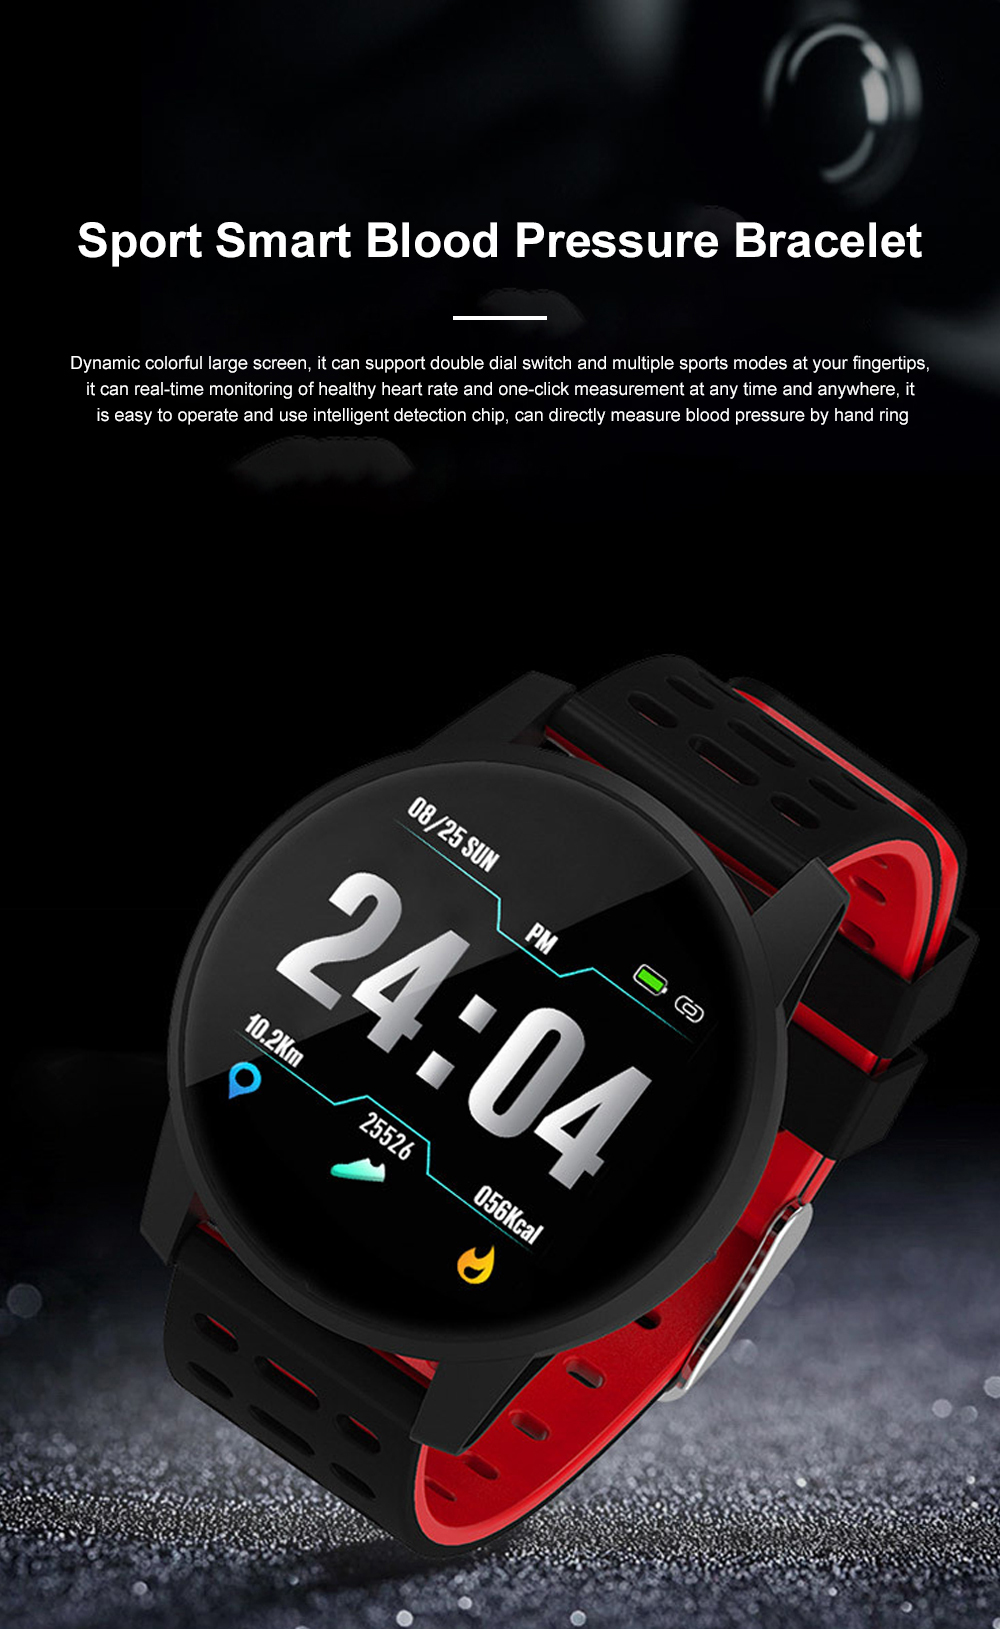 2019 Hot Smart Watch Support Heart Rate Monitor Blood Pressure Bracelet for Ios Android Phone Sport Smart Watch 0